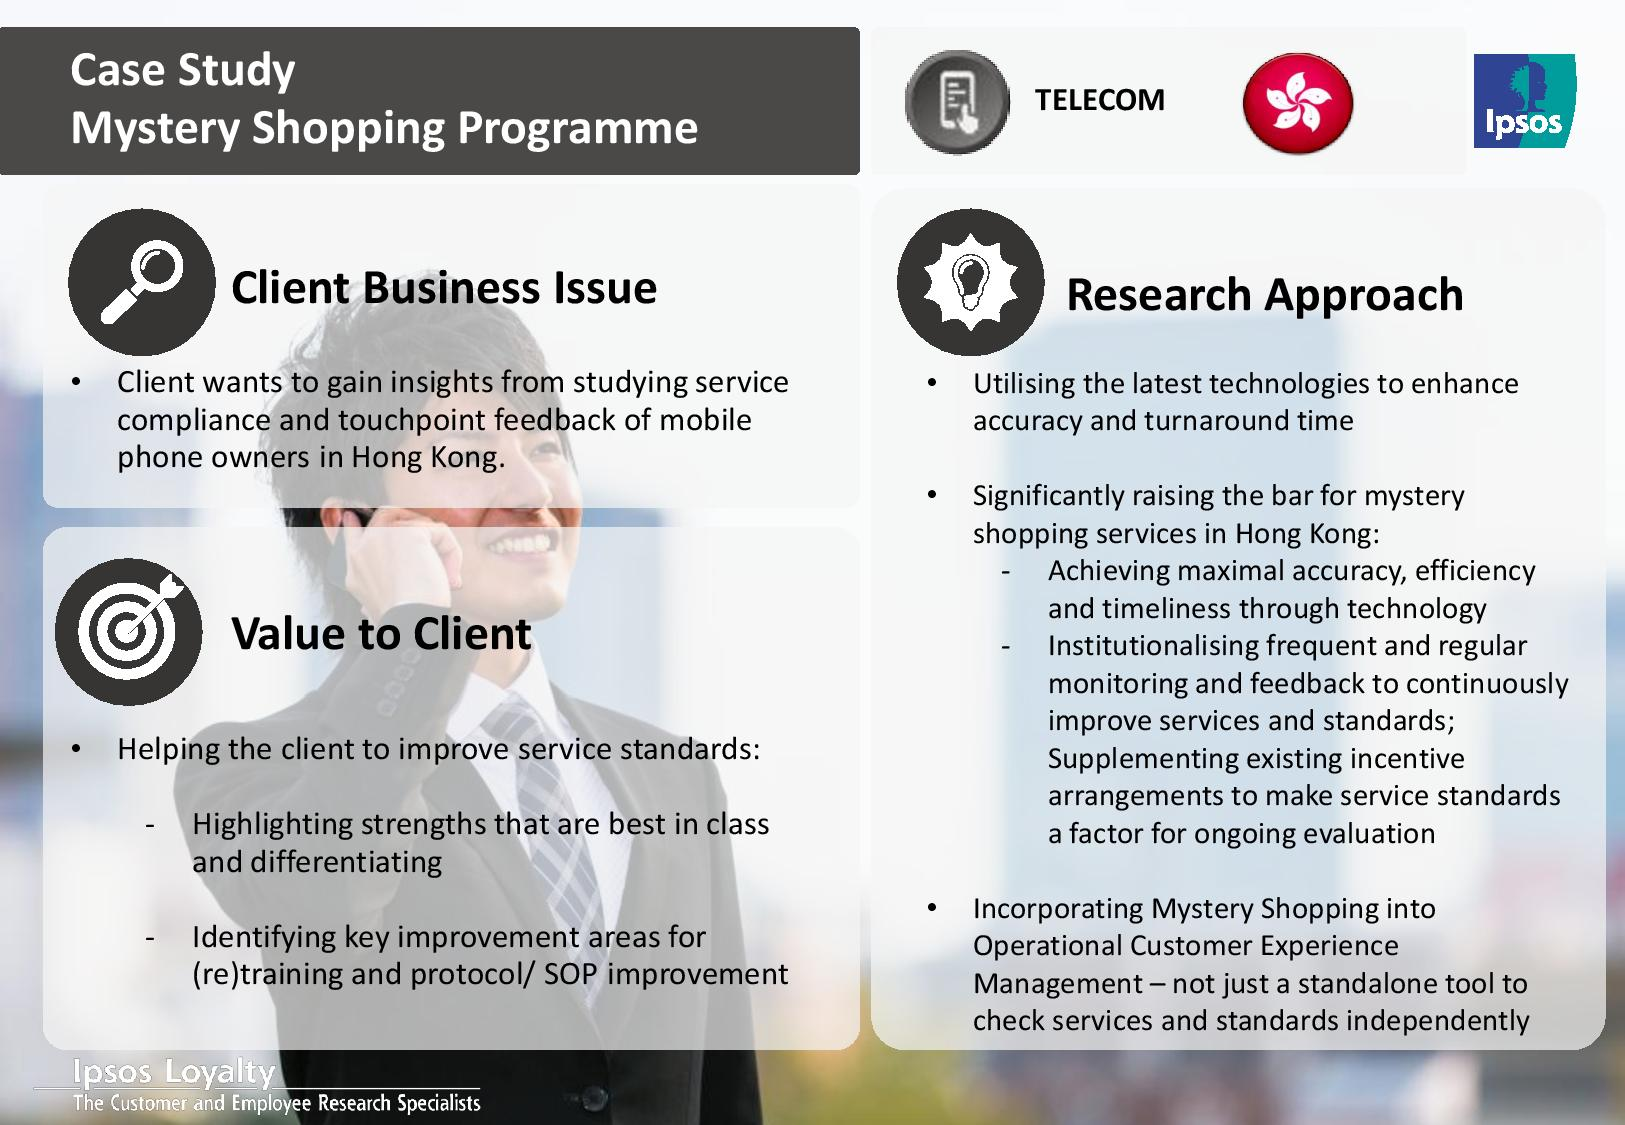 british telecom case study British telecom has over 100 000 employees working in six different lines of business, spanning 170 countries full engagement is always a challenge, but bt sought to address health and wellbeing issues affecting their workforce by getting them involved.